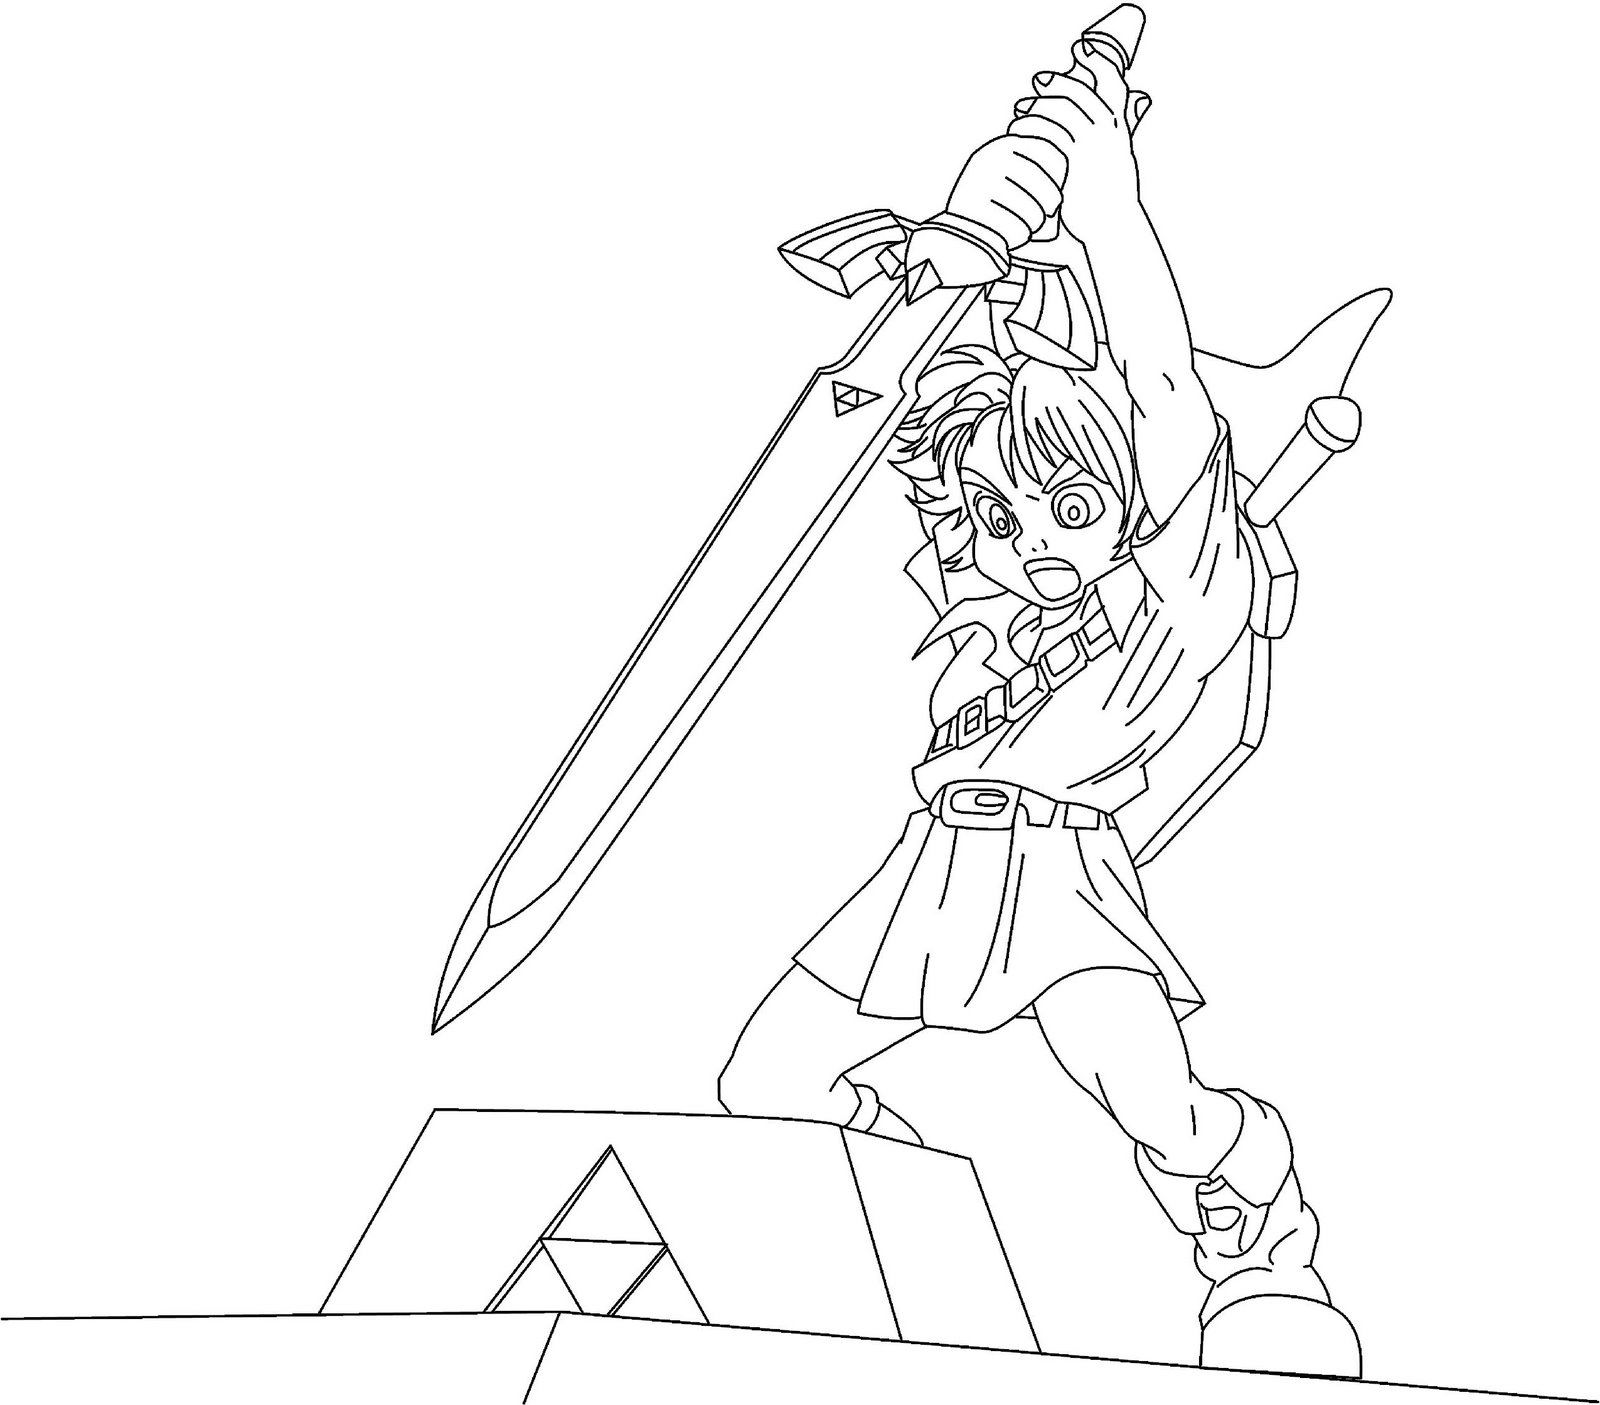 AHG Coloring Pages: Printable coloring pages for your Troop.